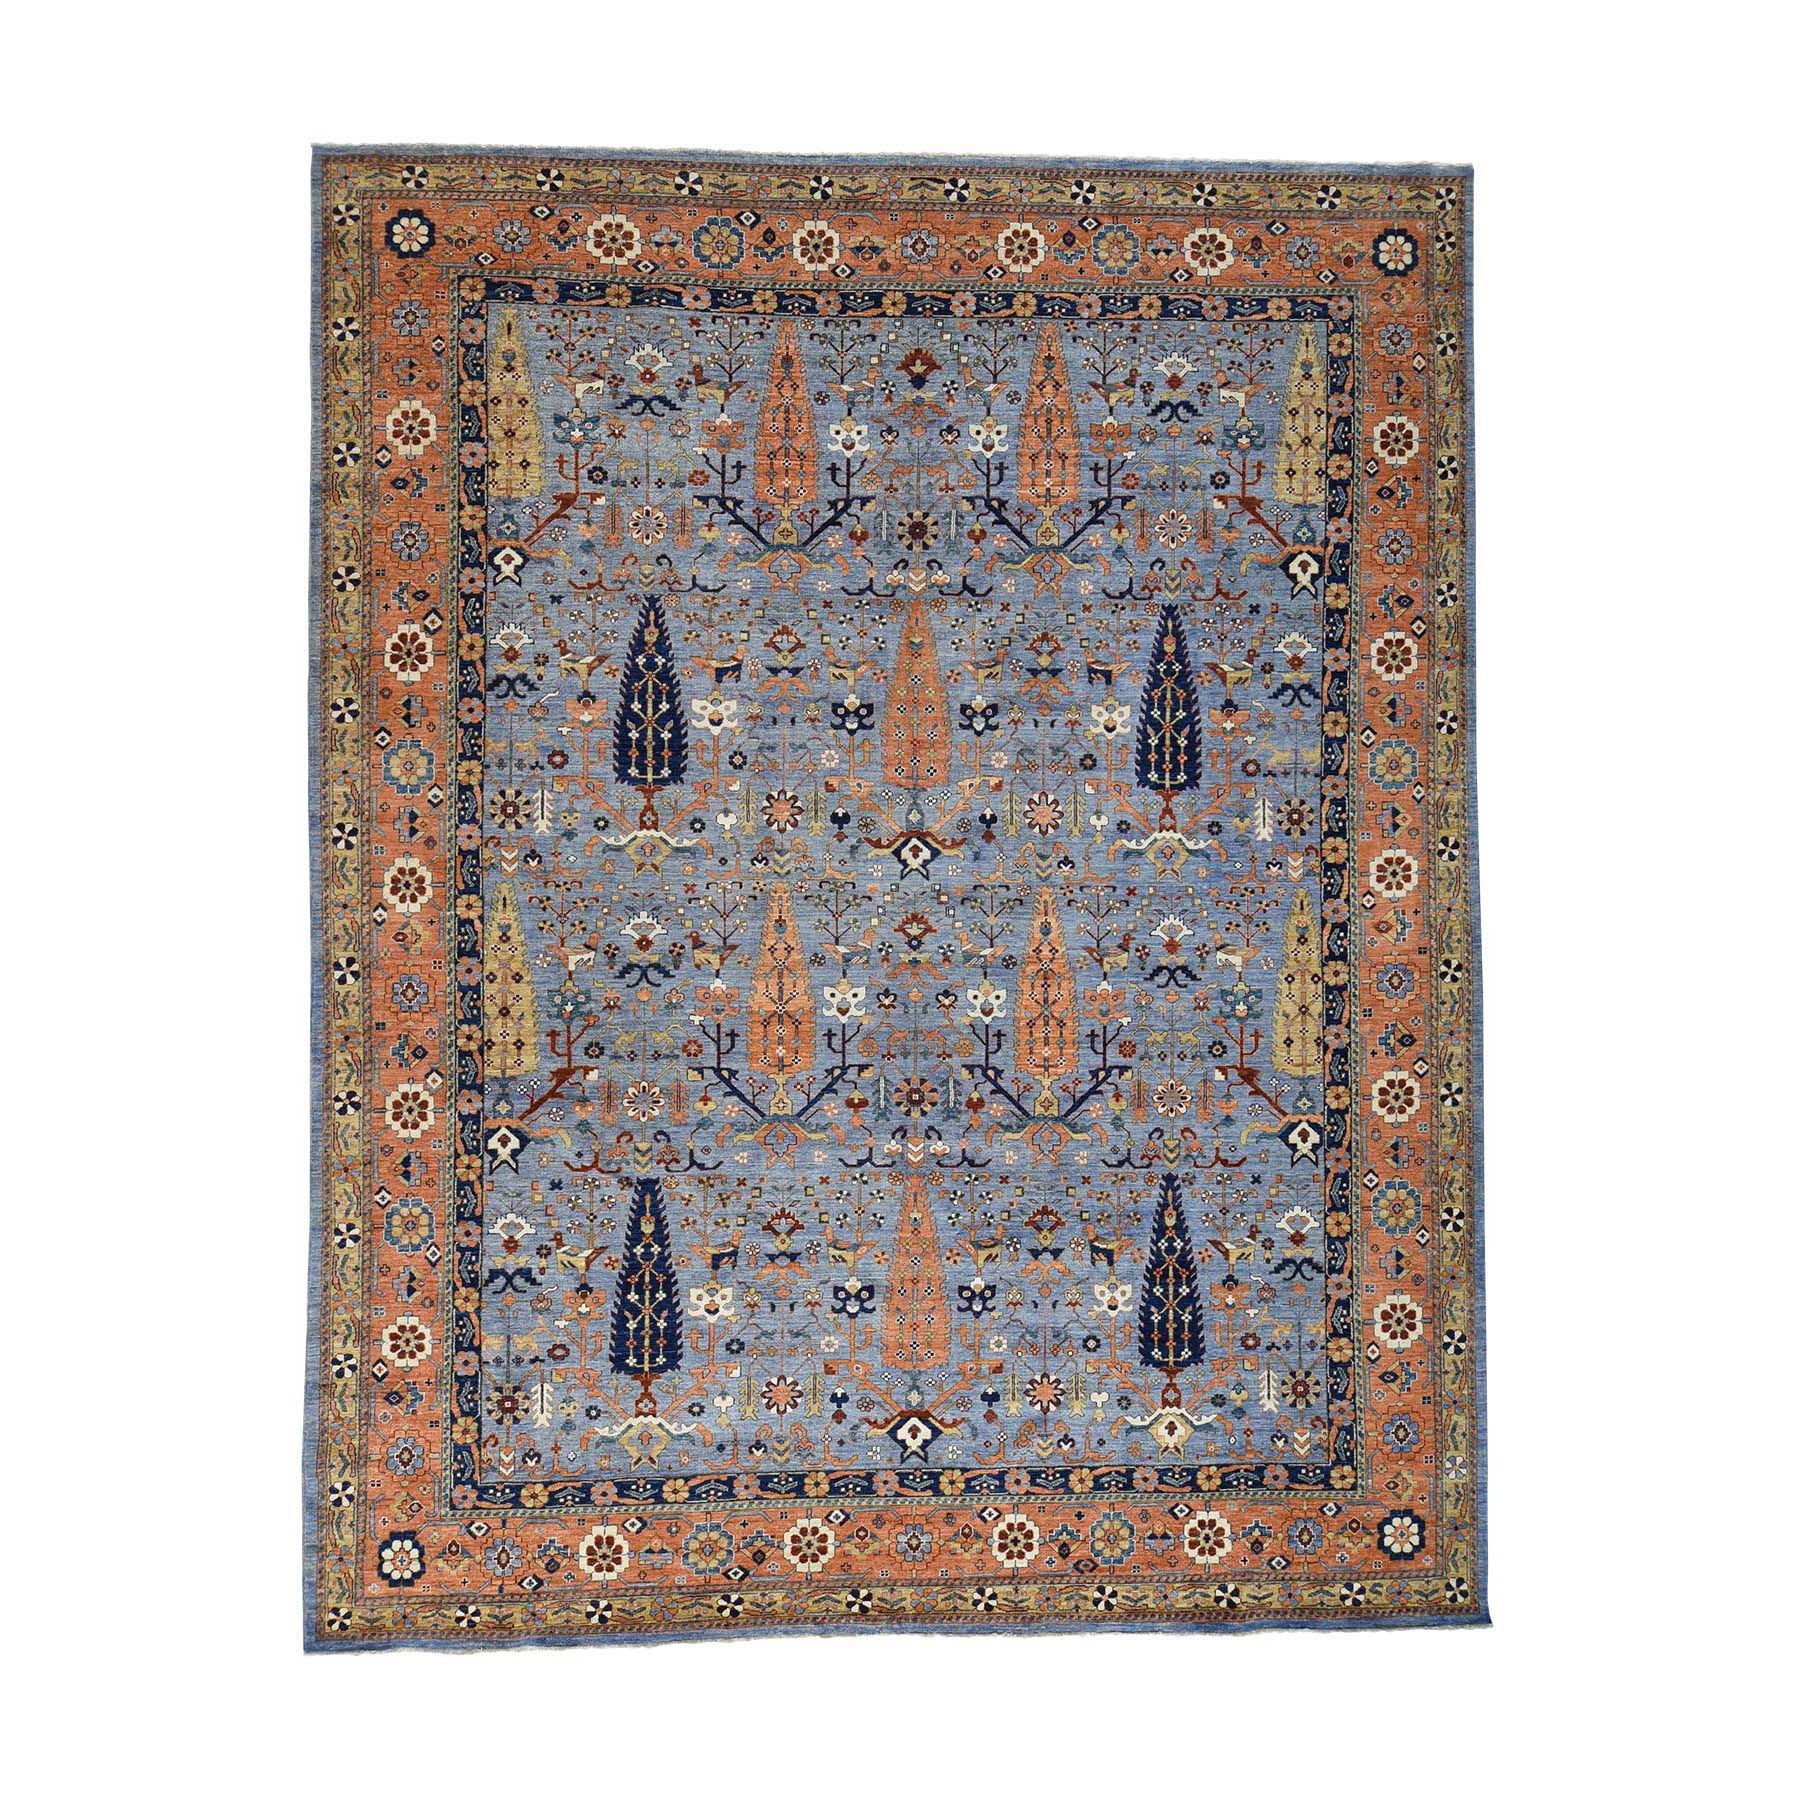 11'10''X15' Hand Knotted Willow And Cypress Tree Design Oversize Peshawar Rug moac8c97